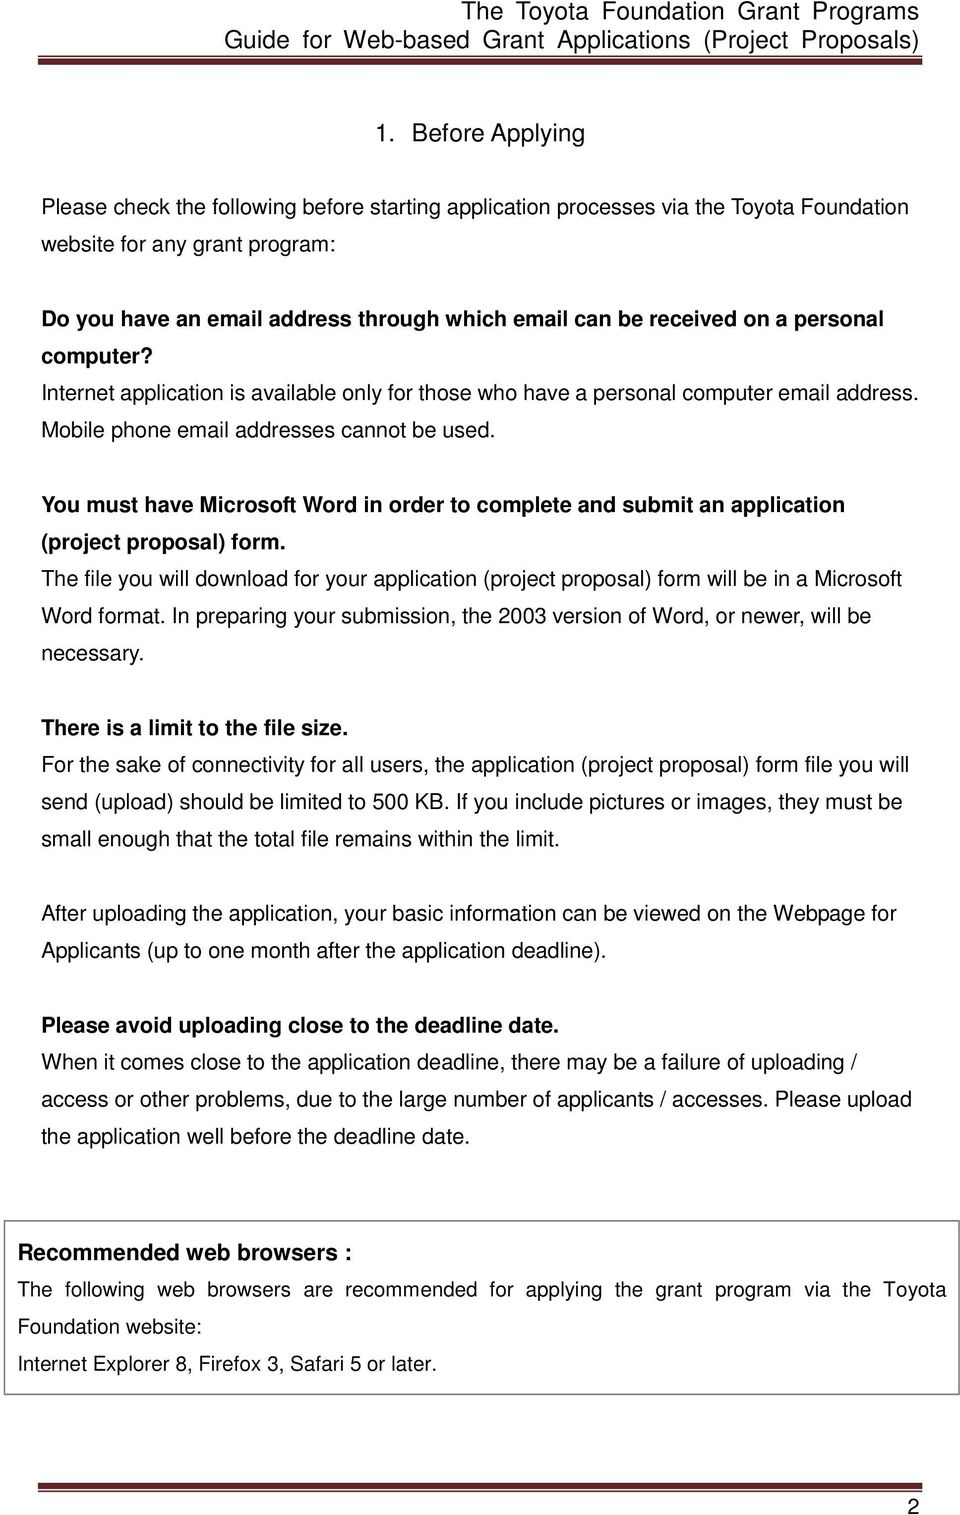 You must have Microsoft Word in order to complete and submit an application (project proposal) form.